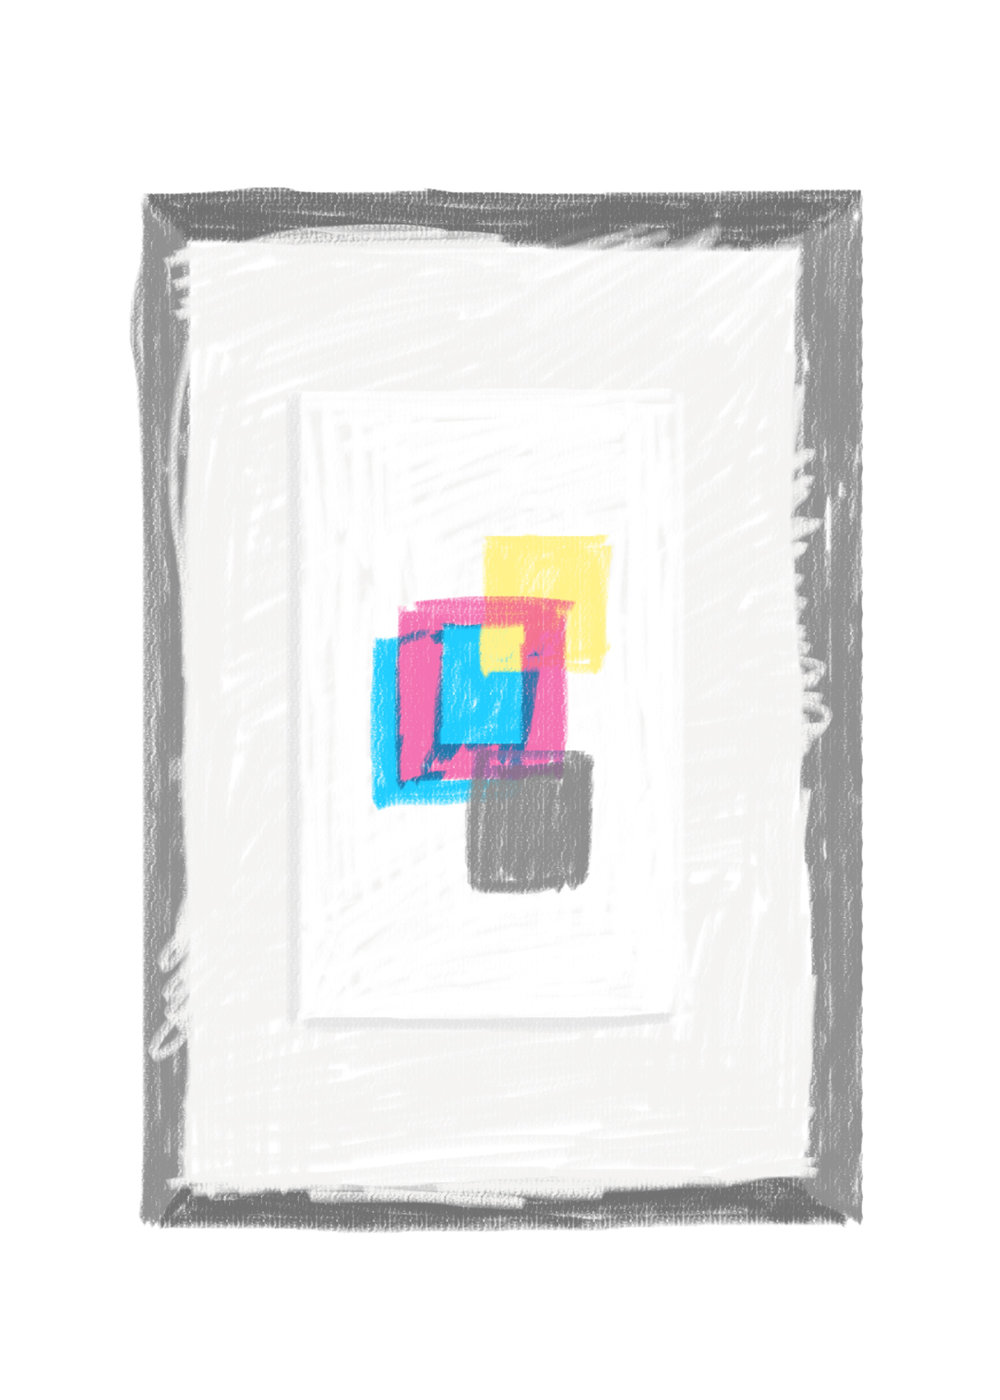 Blog_Wednesday_10LittleThings_framed art.jpg